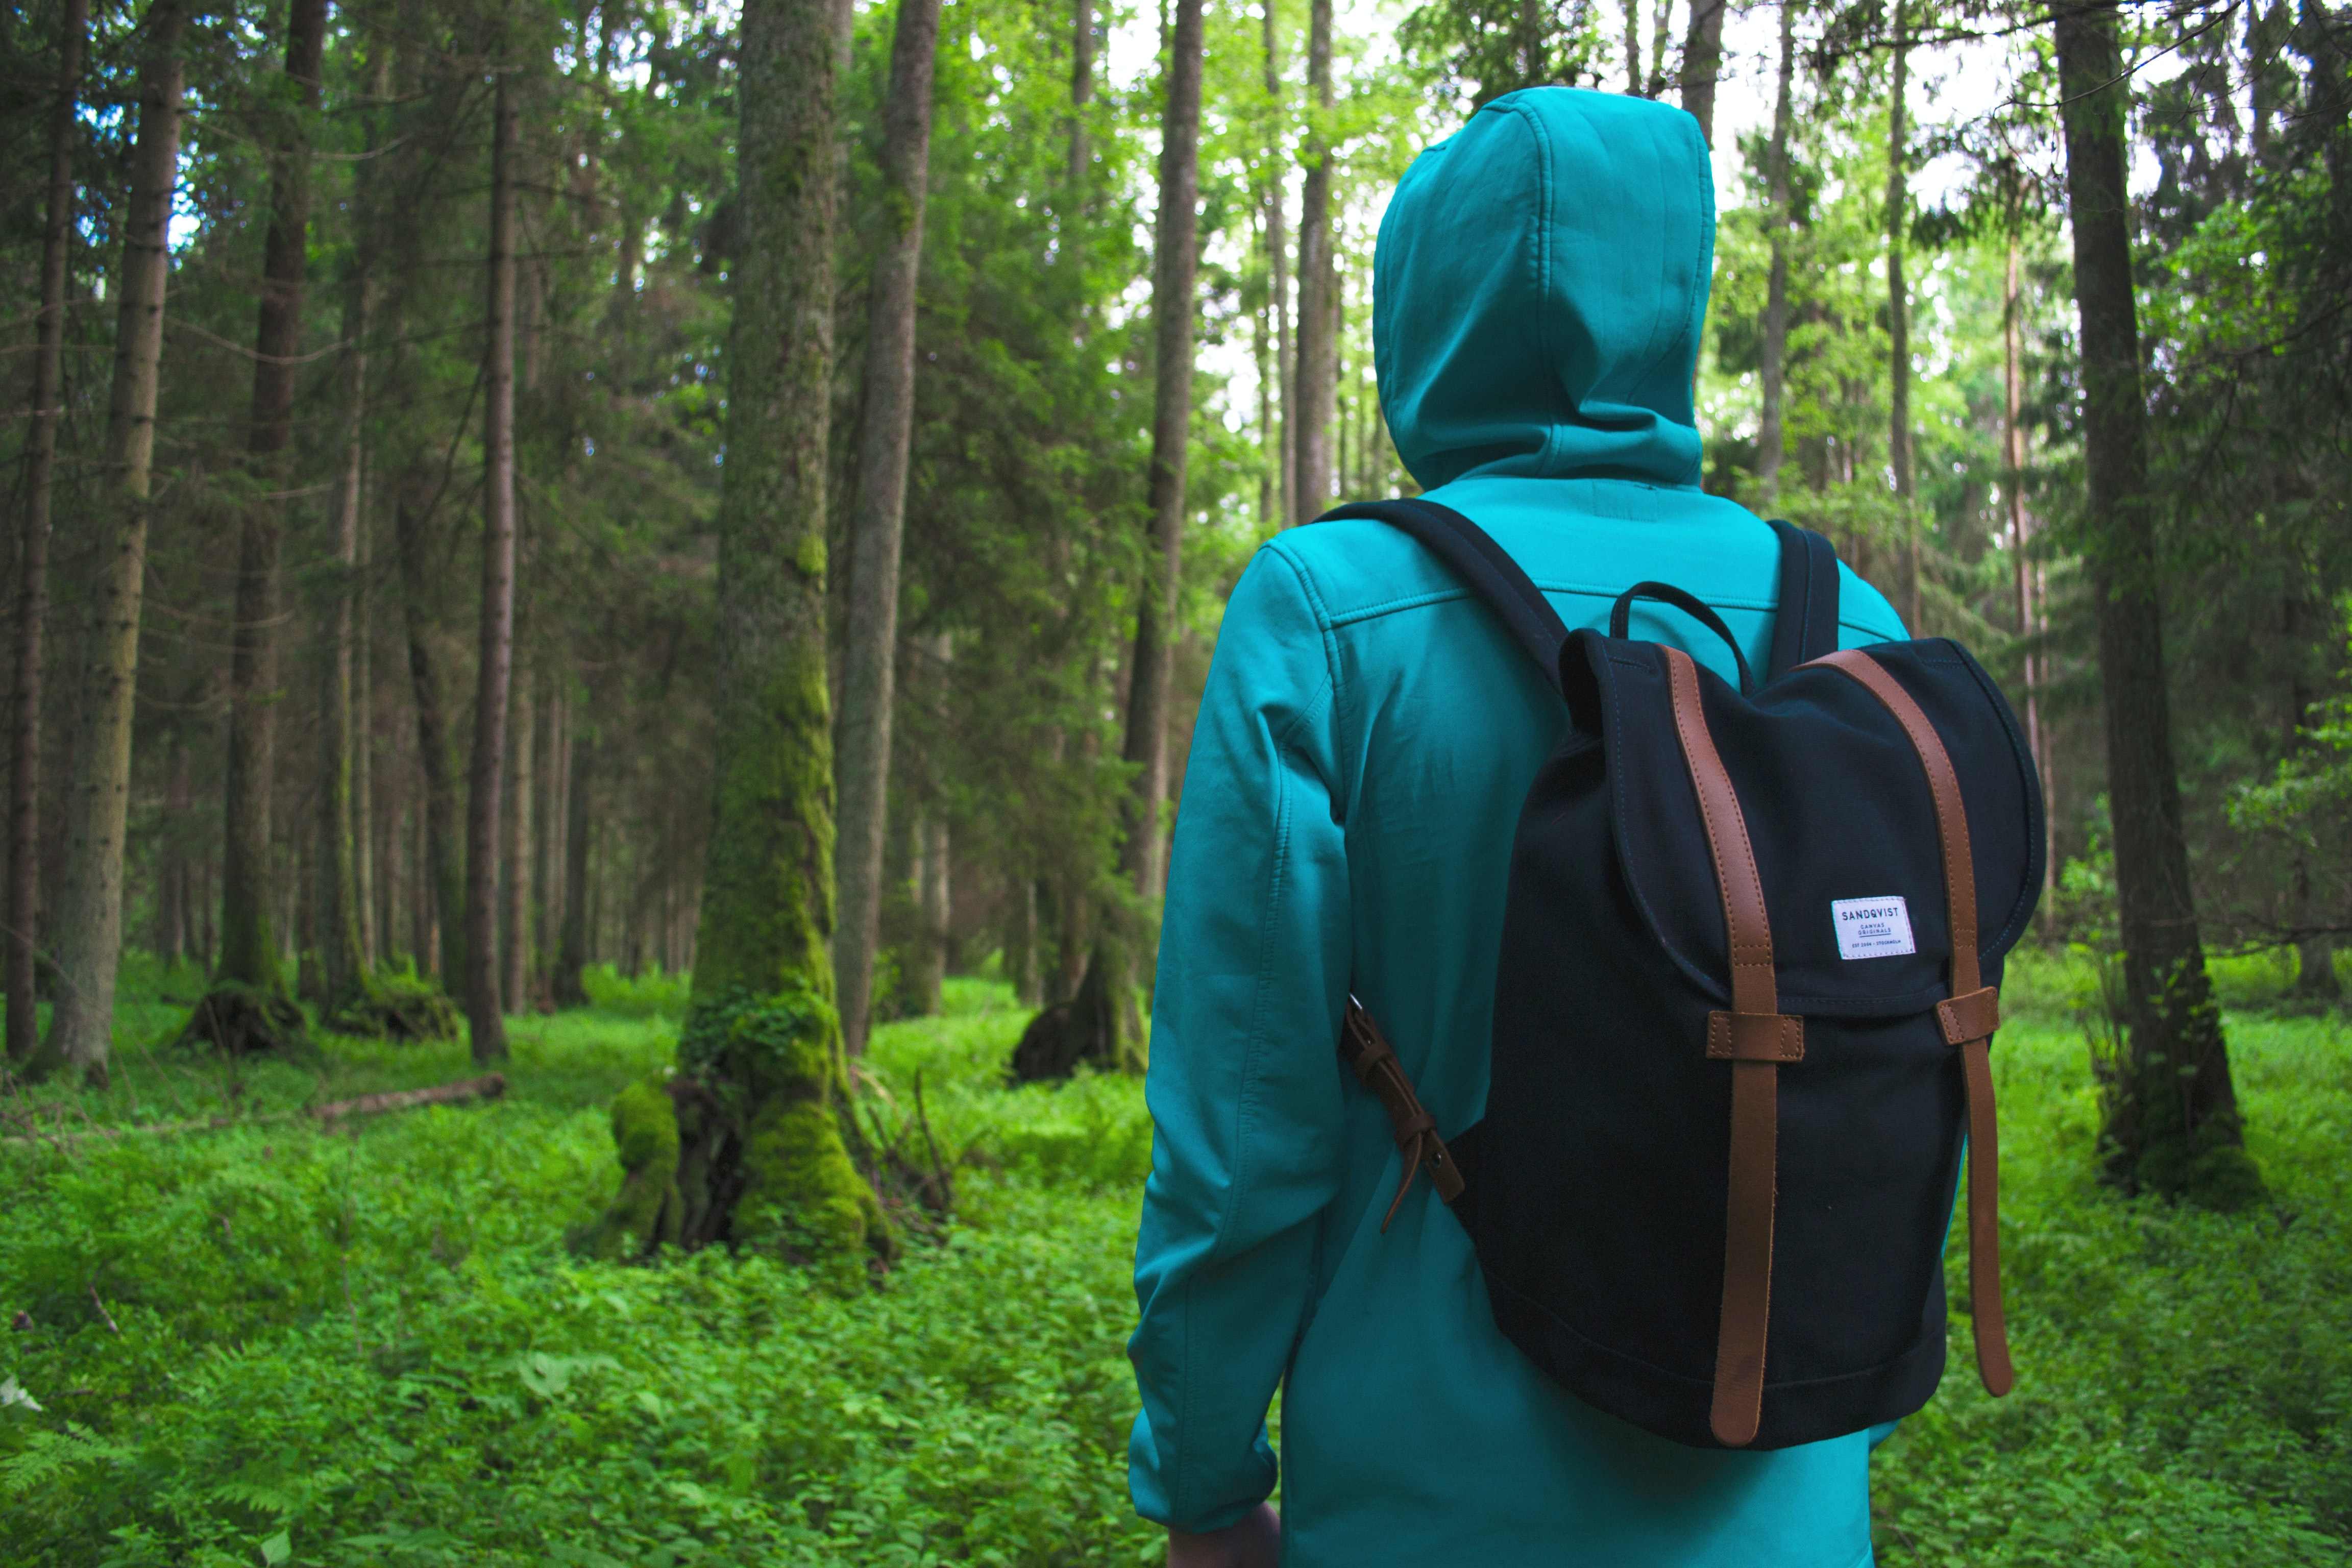 A hooded hiker with a small backpack in a green forest